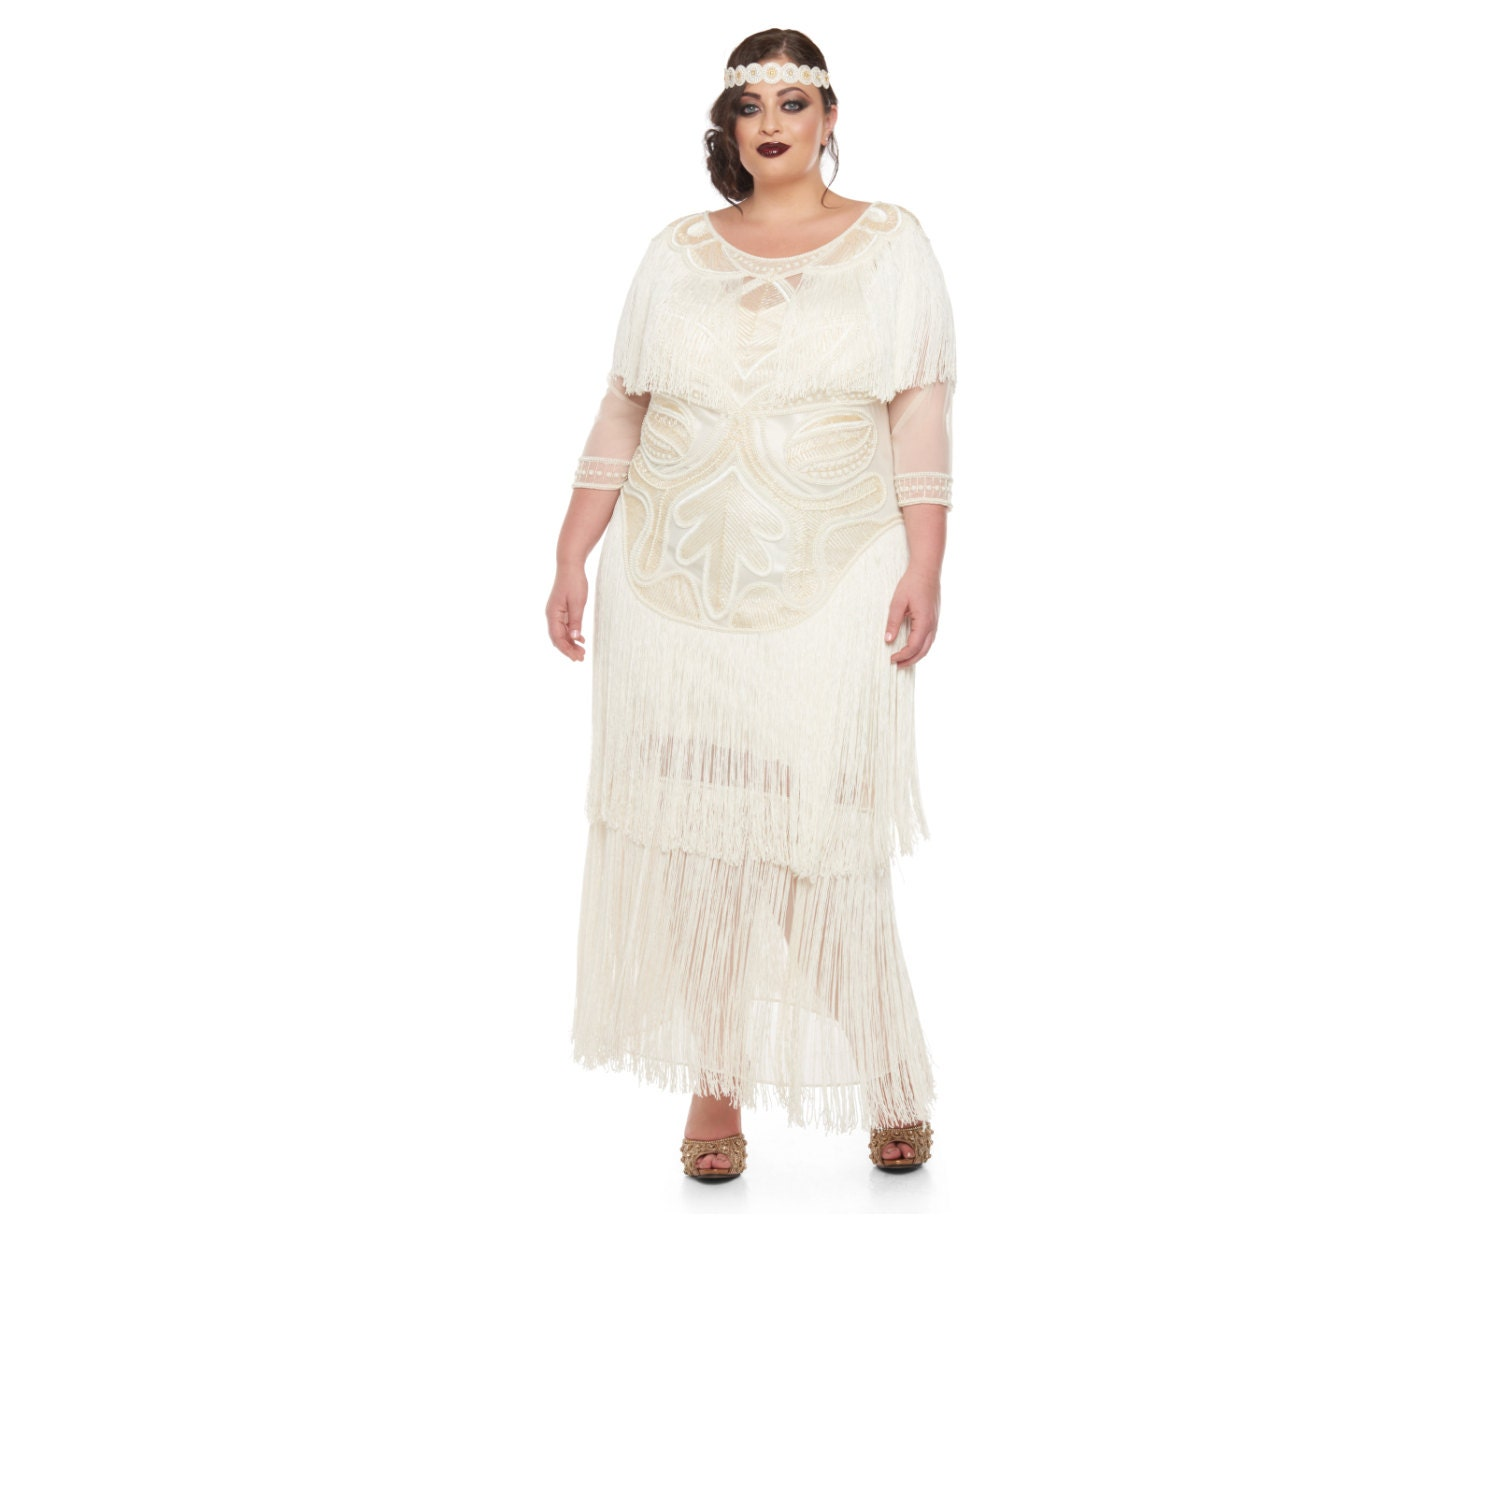 plus size wedding gown cream glam prom maxi dress with sleeves 20s great gatsby downton abbey bridal shower wedding reception beach wedding